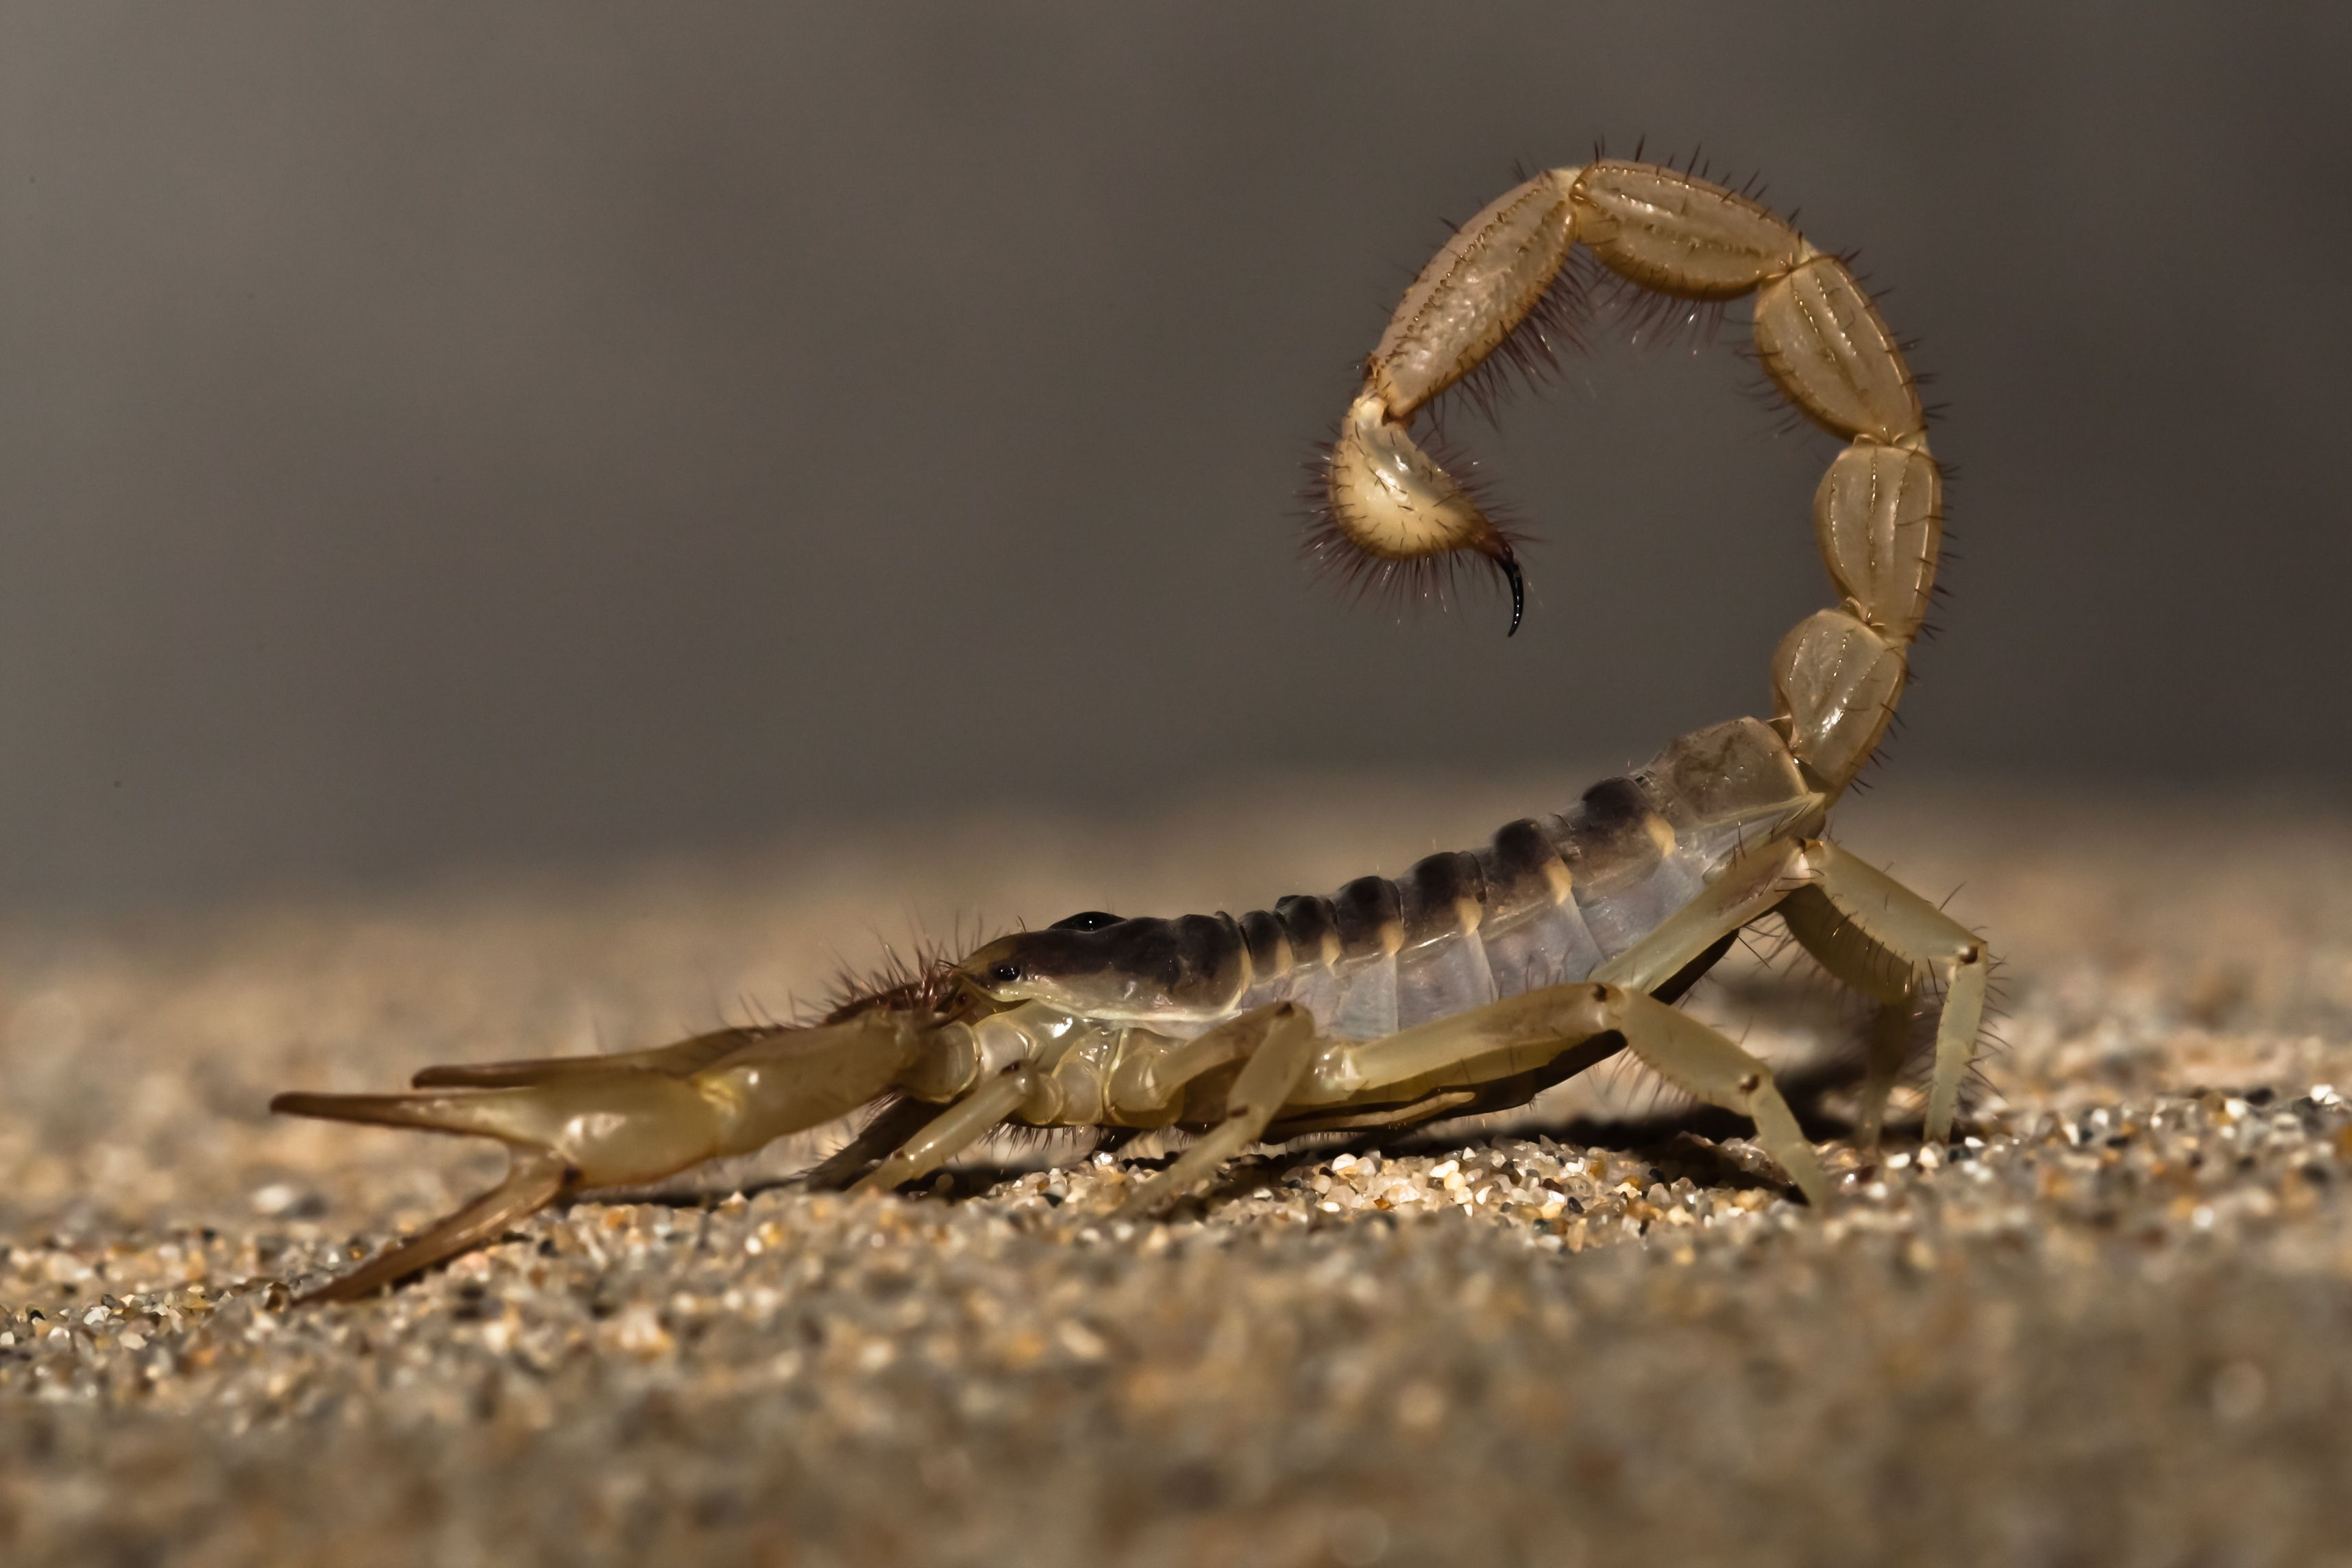 Desert scorpion - photo#52